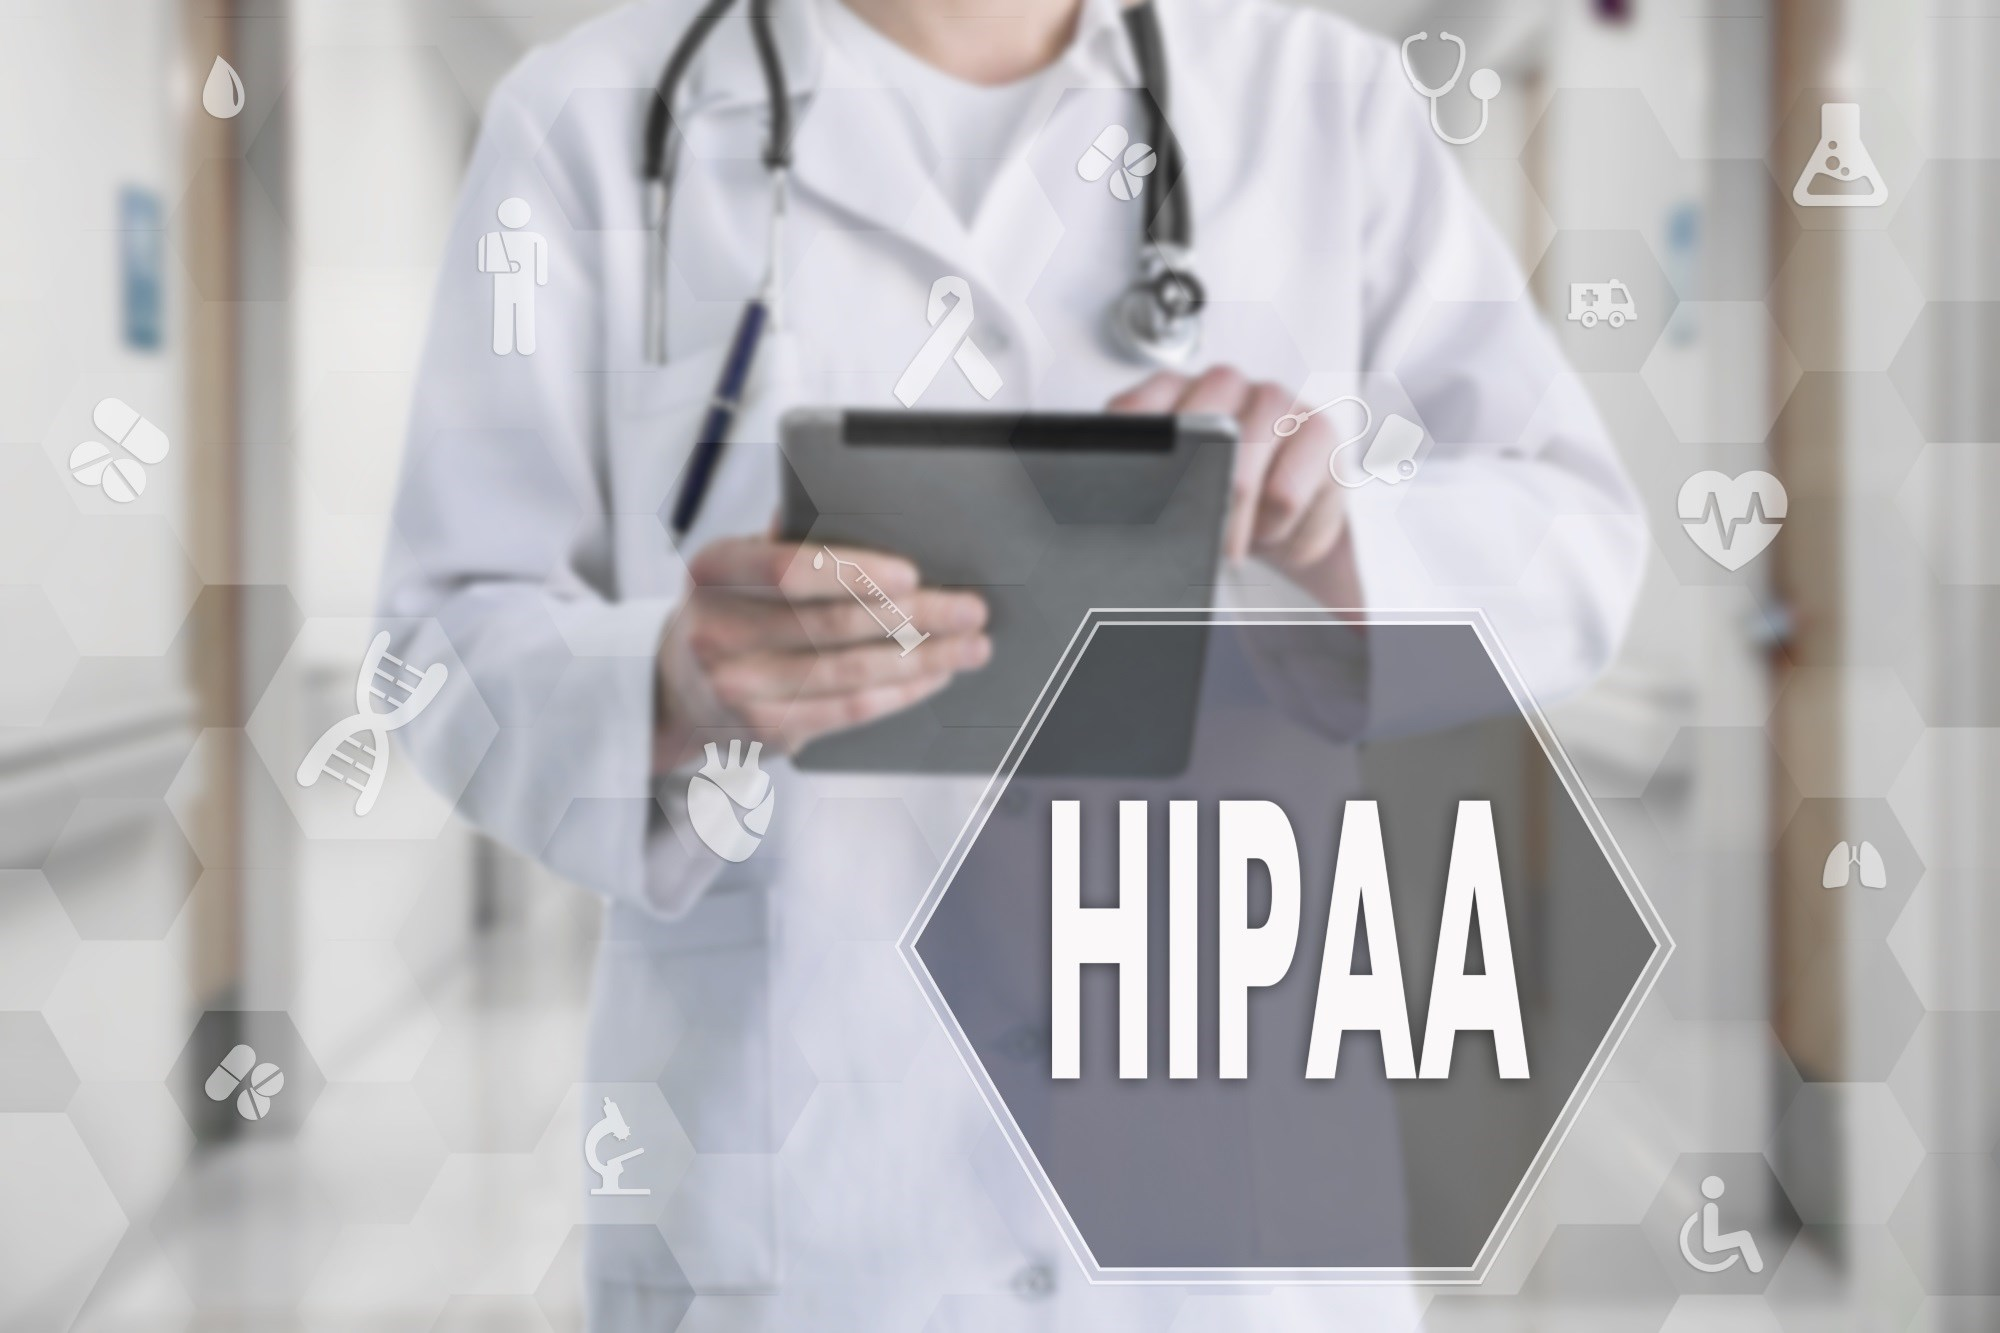 The Harmful Application of HIPAA: How to Protect Privacy and Patient Care